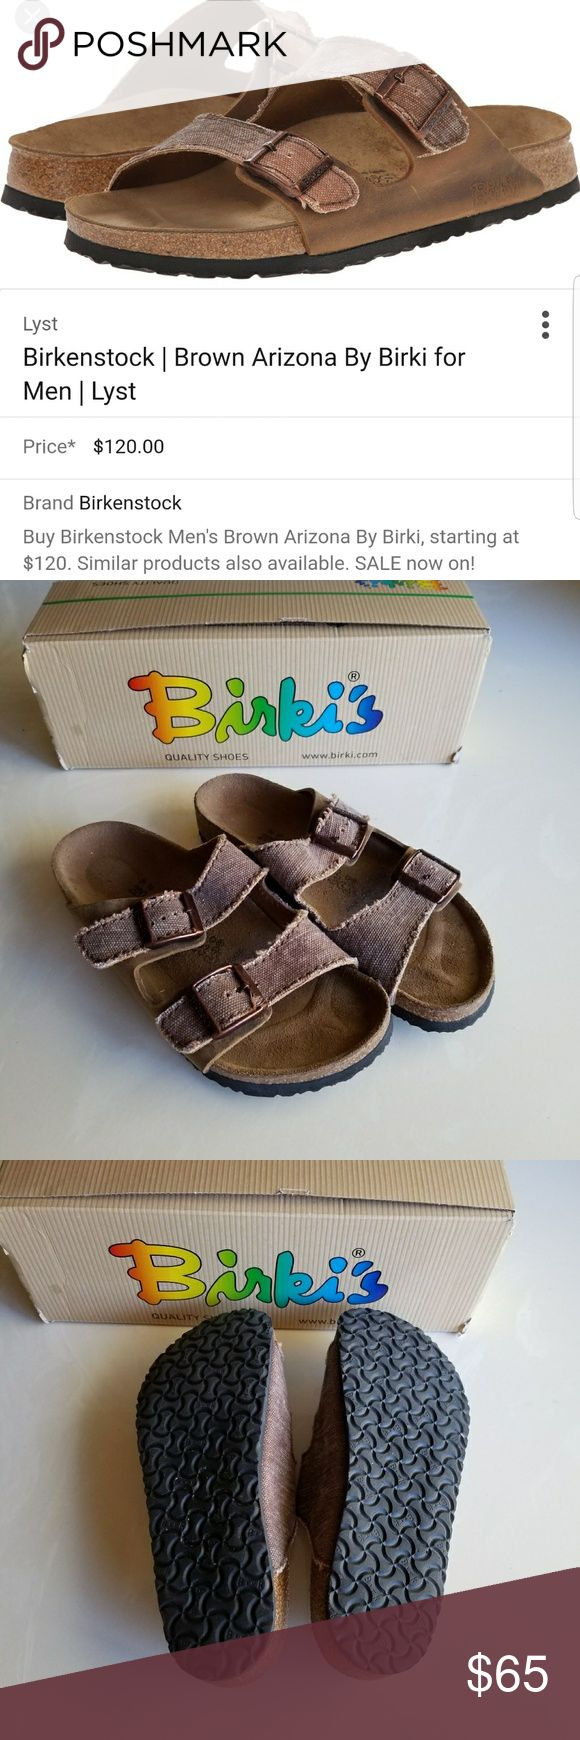 New Size 34 4(kids) 5 (woman) birki's birkenstock Unisex basically new distressed birki's.  Bought for my some from Birkenstock in Germany, can't return.  Doesnt fit him. He wore it once around house & to garage.  Brand new for men are$120. Birkenstock Shoes Sandals